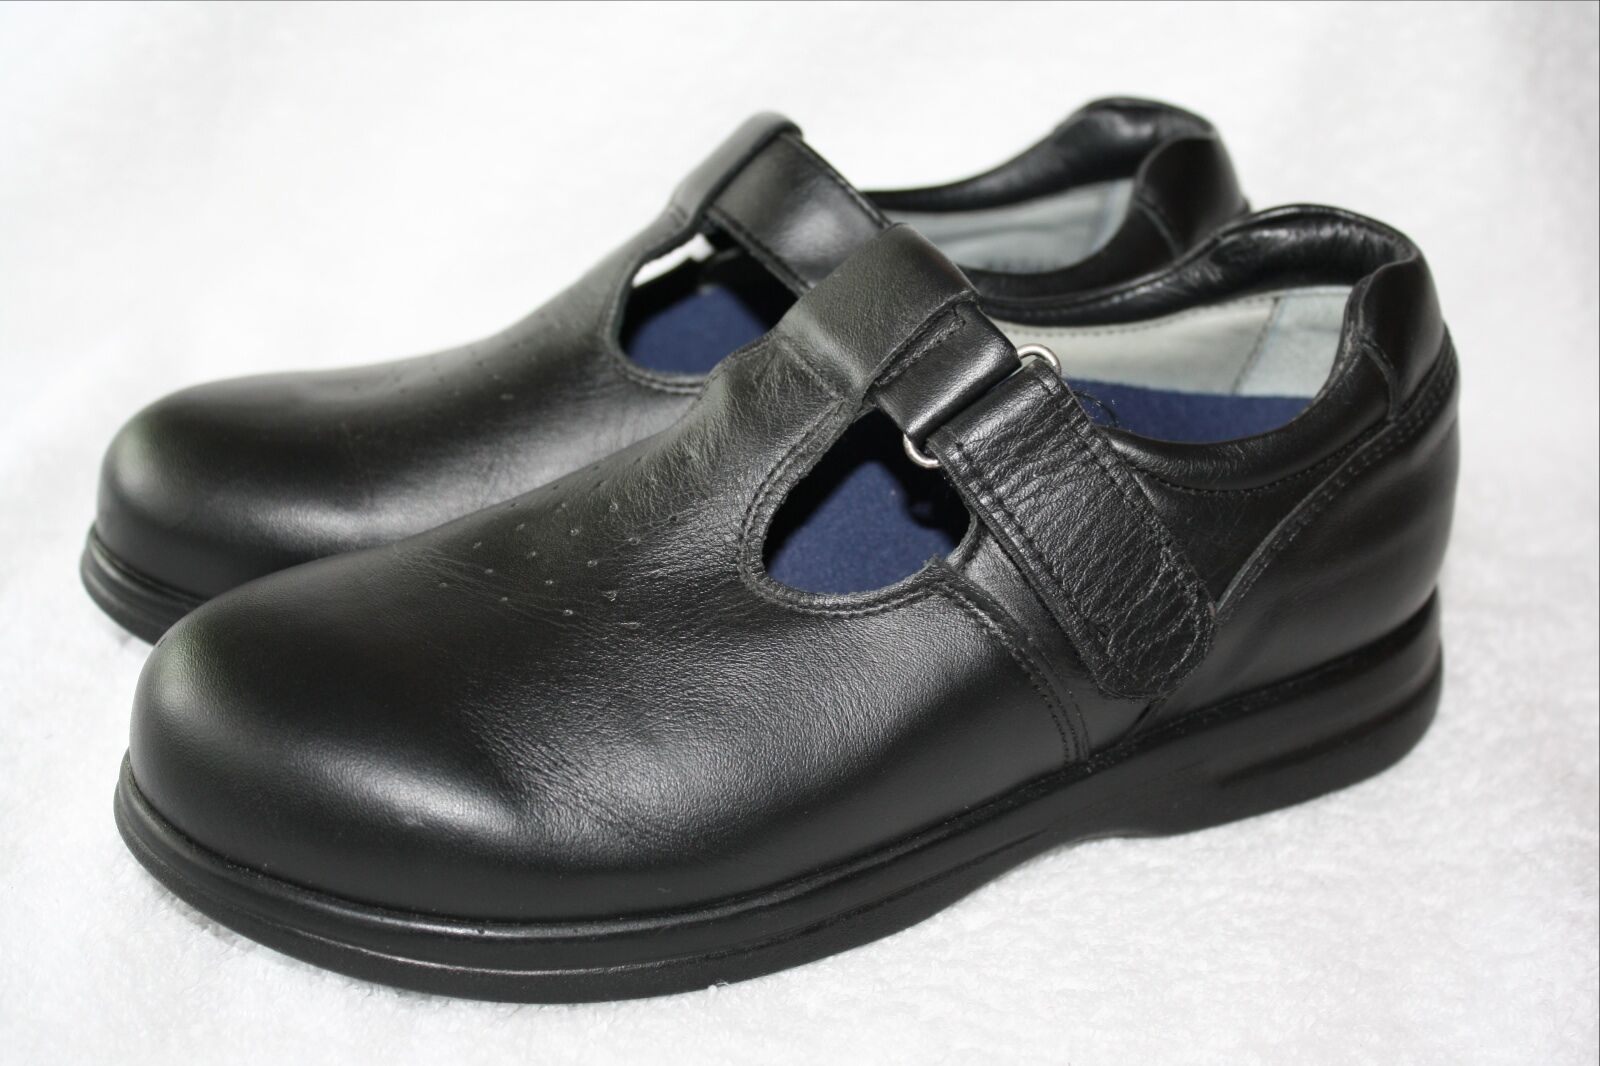 designer online PW PW PW Minor Orthotic Orthopedic Mary Jane Buckle Strap 5.5 D Extra Depth Wide nero  prendi l'ultimo